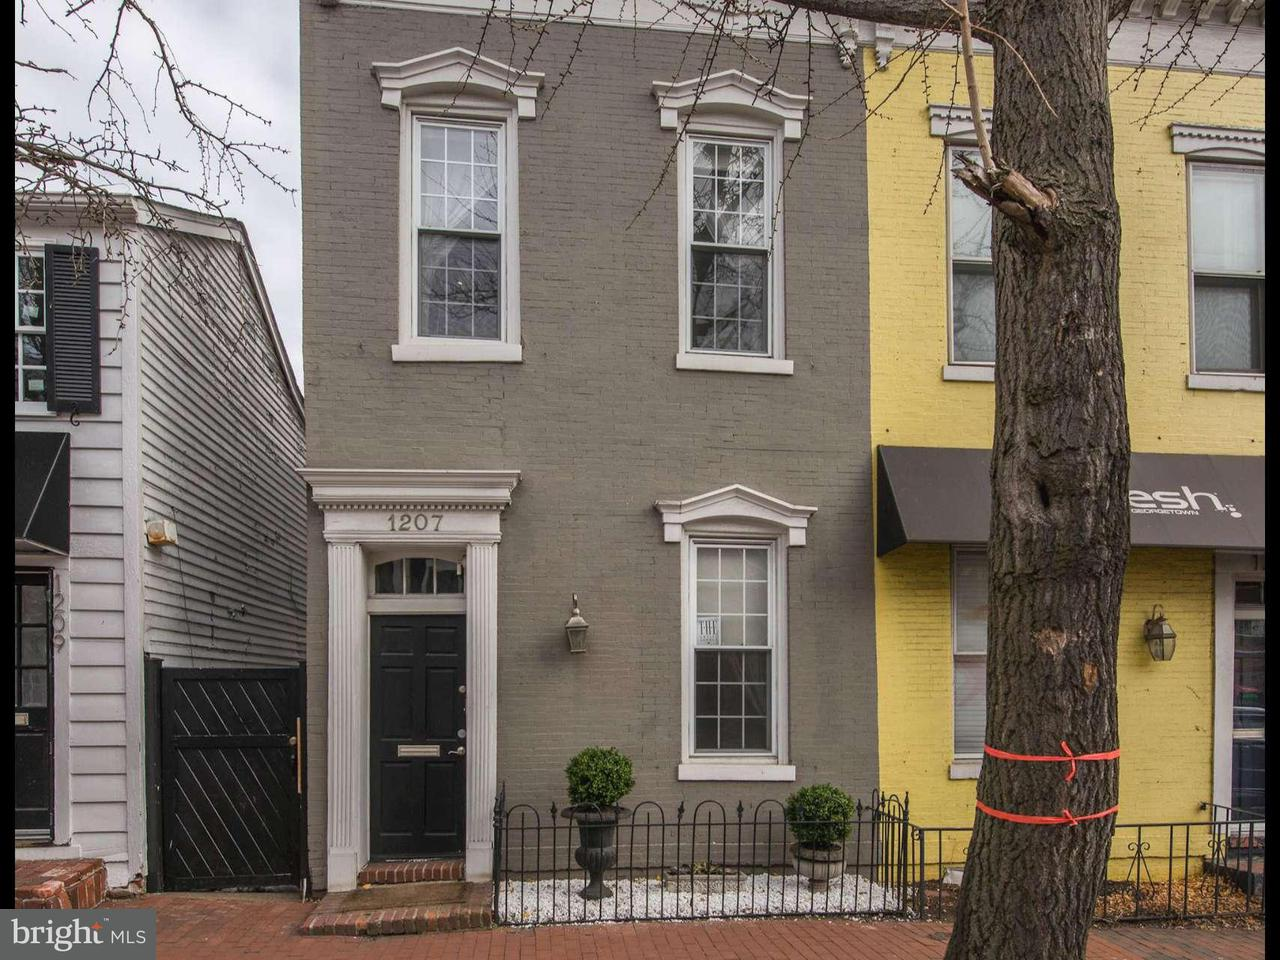 Townhouse for Sale at 1207 POTOMAC ST NW 1207 POTOMAC ST NW Washington, District Of Columbia 20007 United States